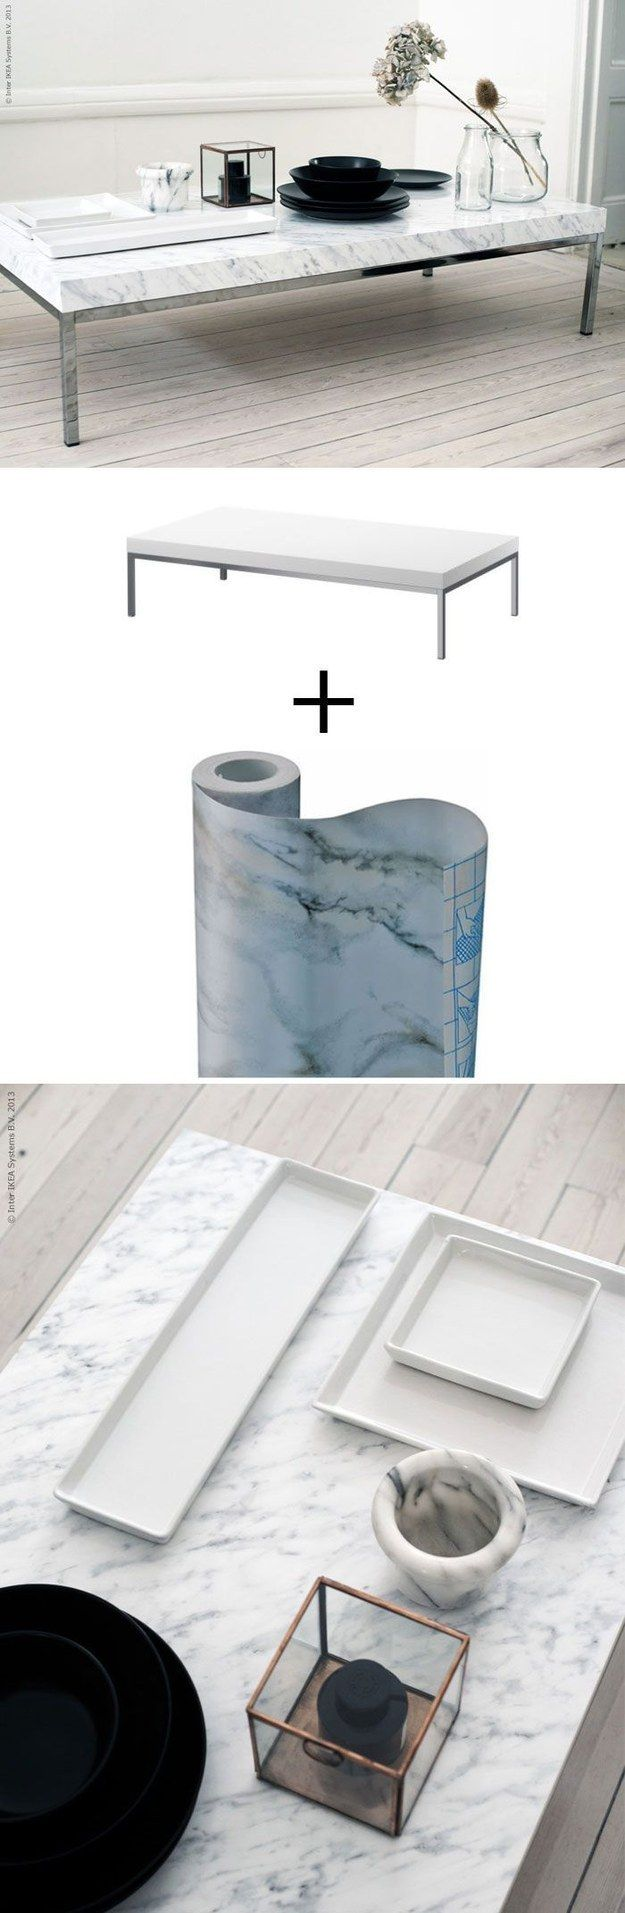 Cubra a mesa de café Klubbo (49,99 dólares) com o contato de mármore papel. | 37 Cheap And Easy Ways To Make Your Ikea Stuff Look Expensive